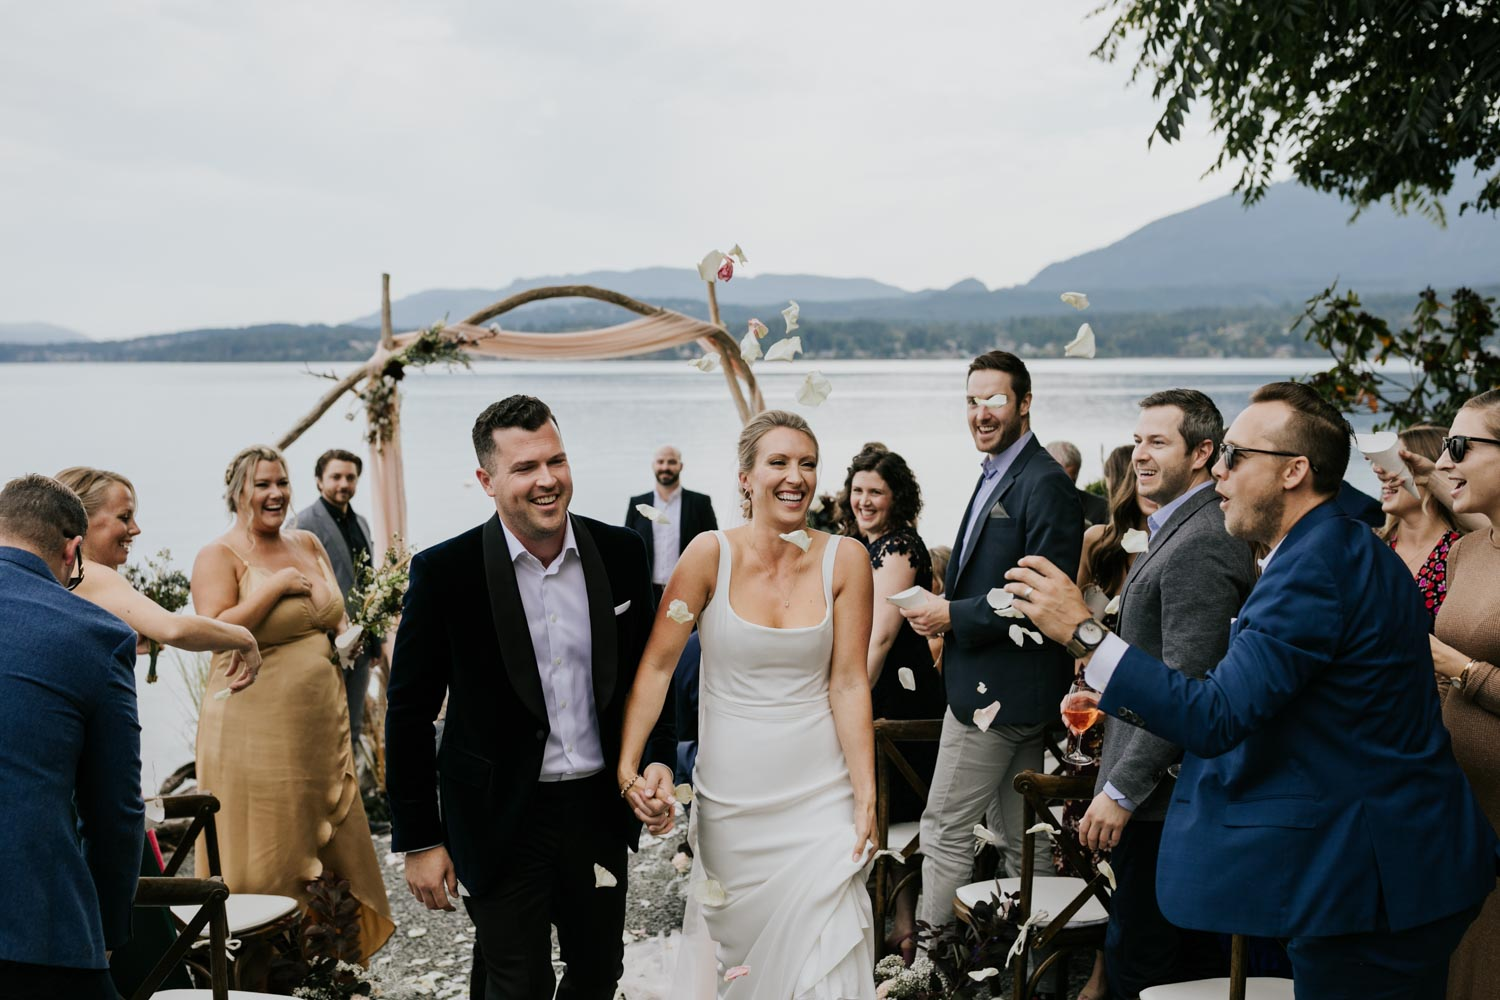 Bride and groom confetti toss at the beach on Vancouver Island under wooden arch decorated with dusty pink fabric, raw cotton stems, pampas grass and dried flowers